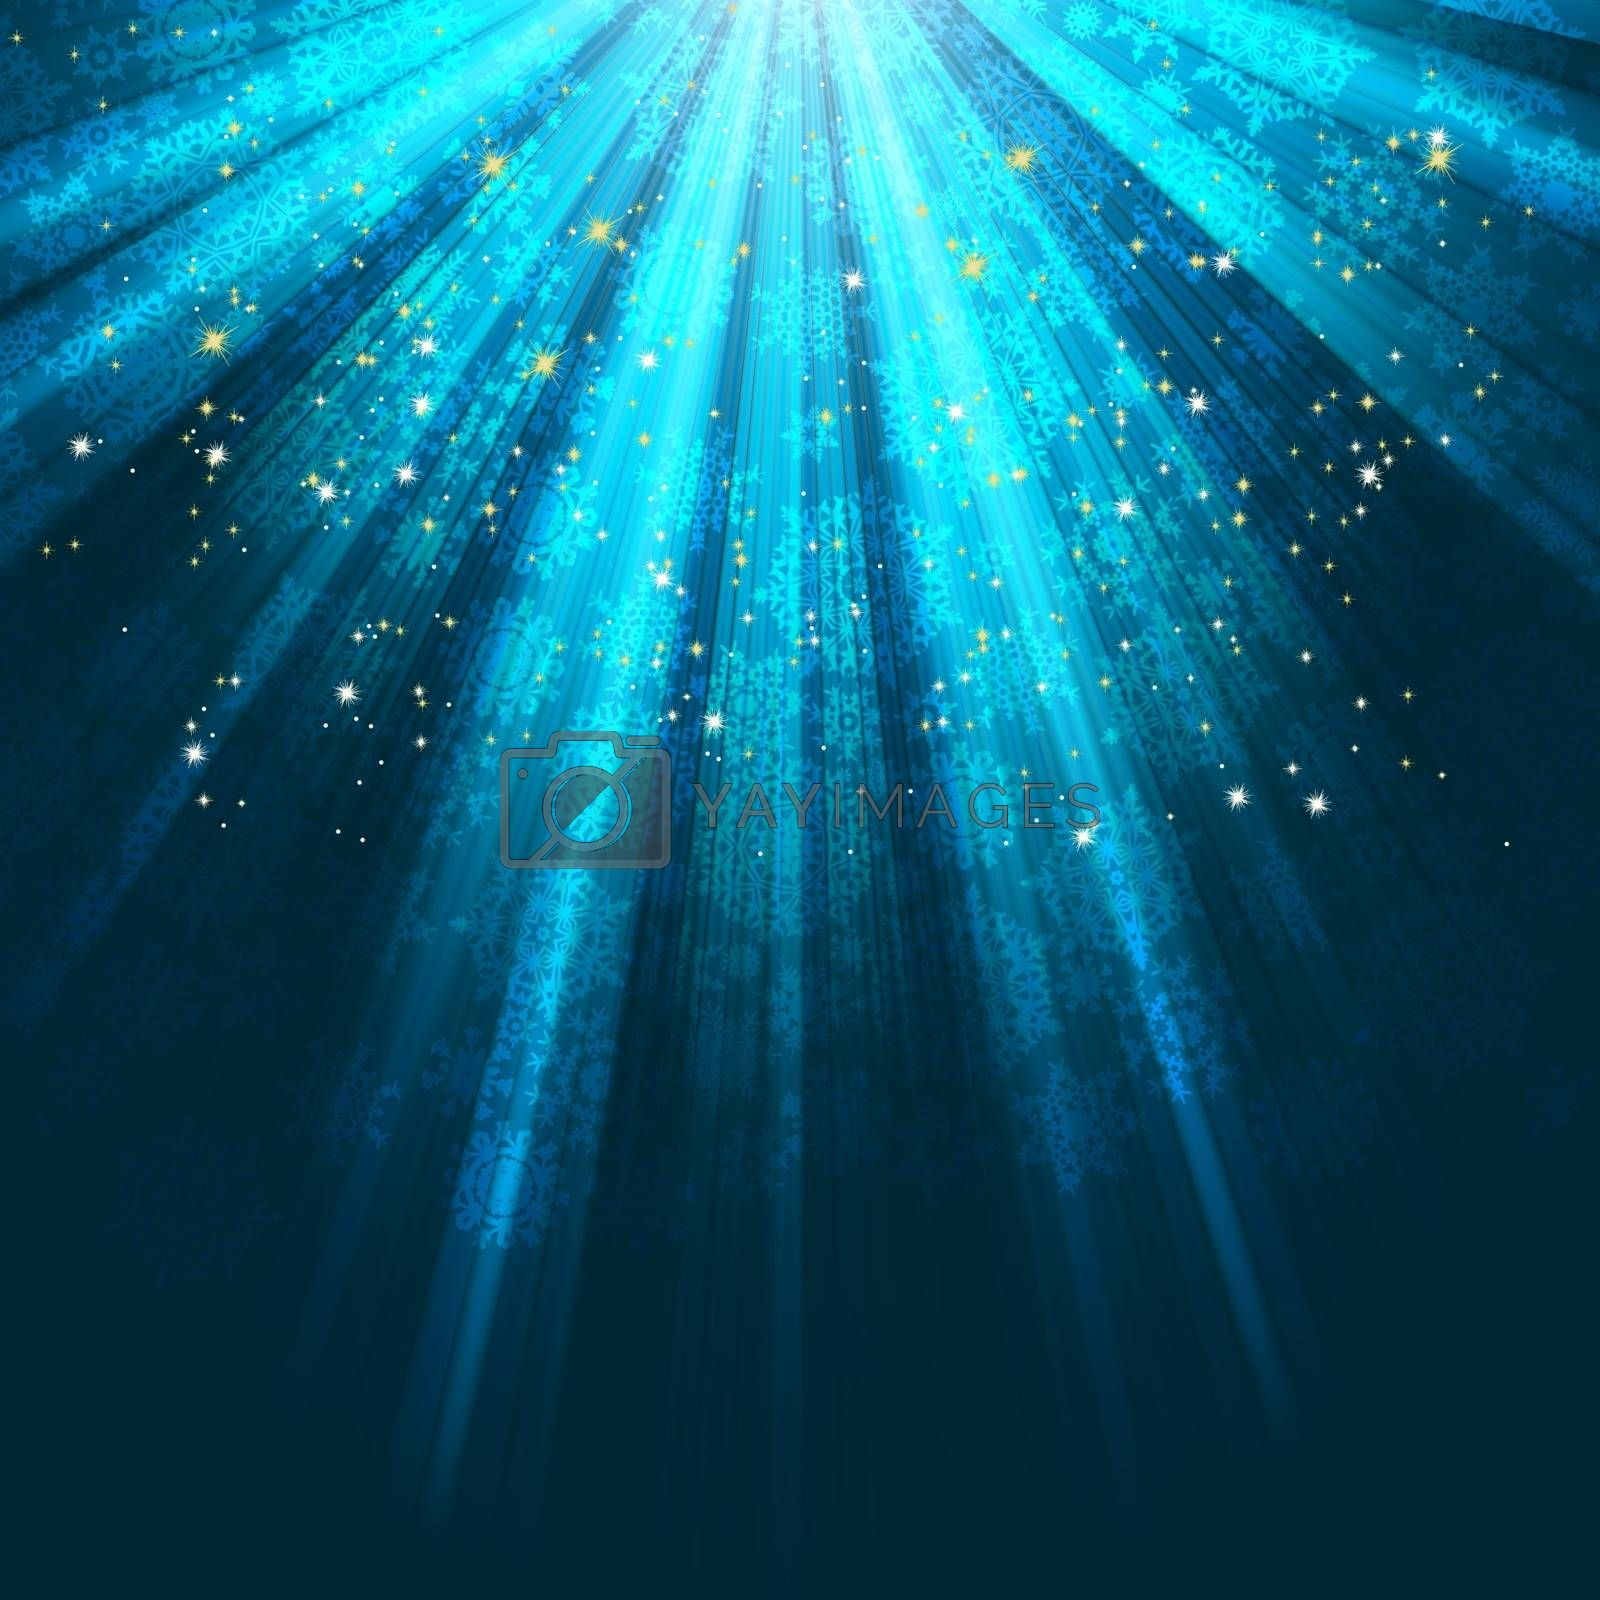 Snowflakes and stars descending on background. EPS 8 vector file included